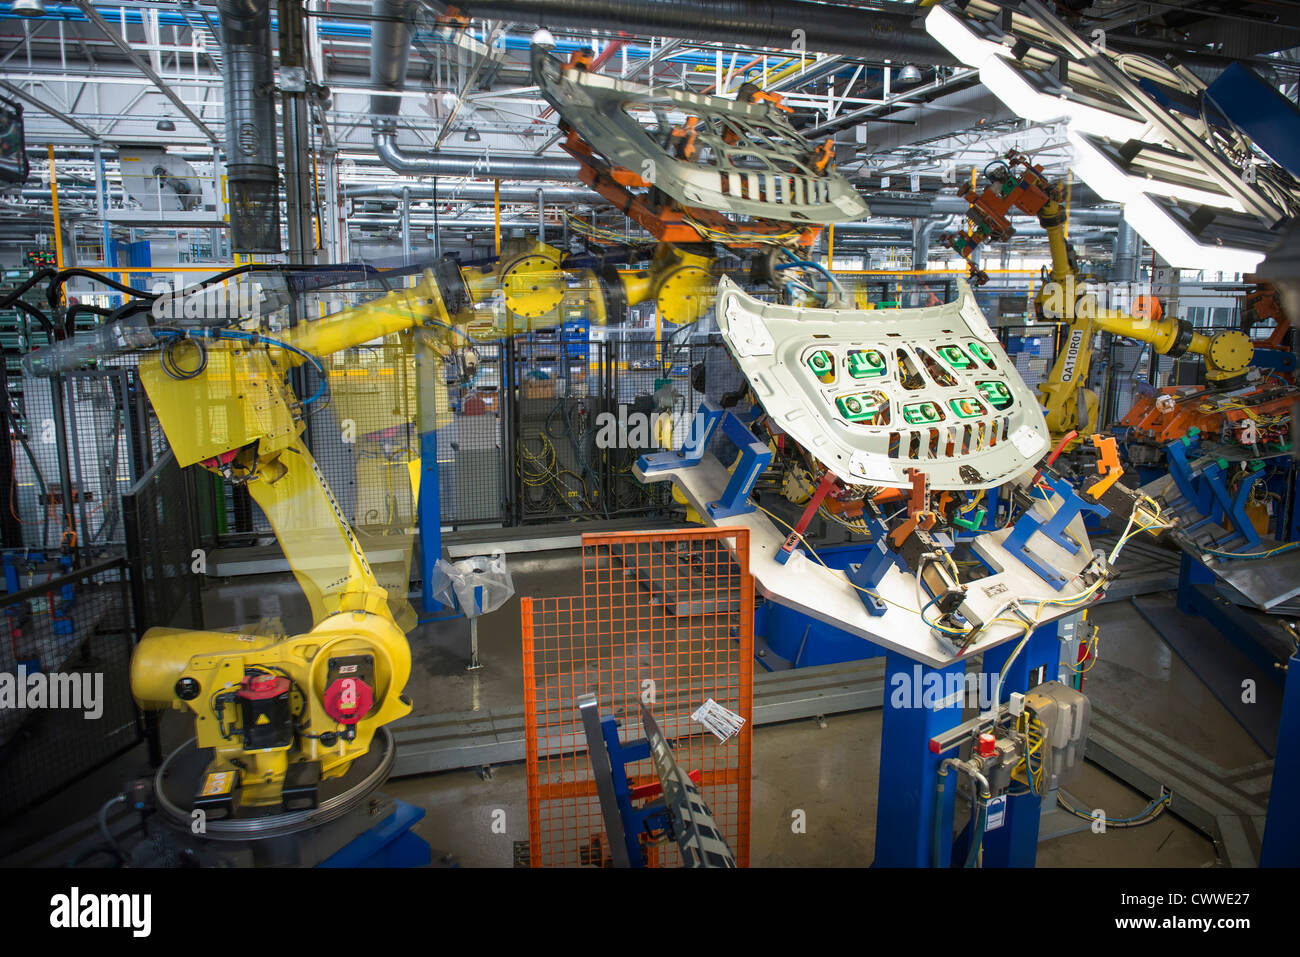 Robots handling car parts in car factory - Stock Image